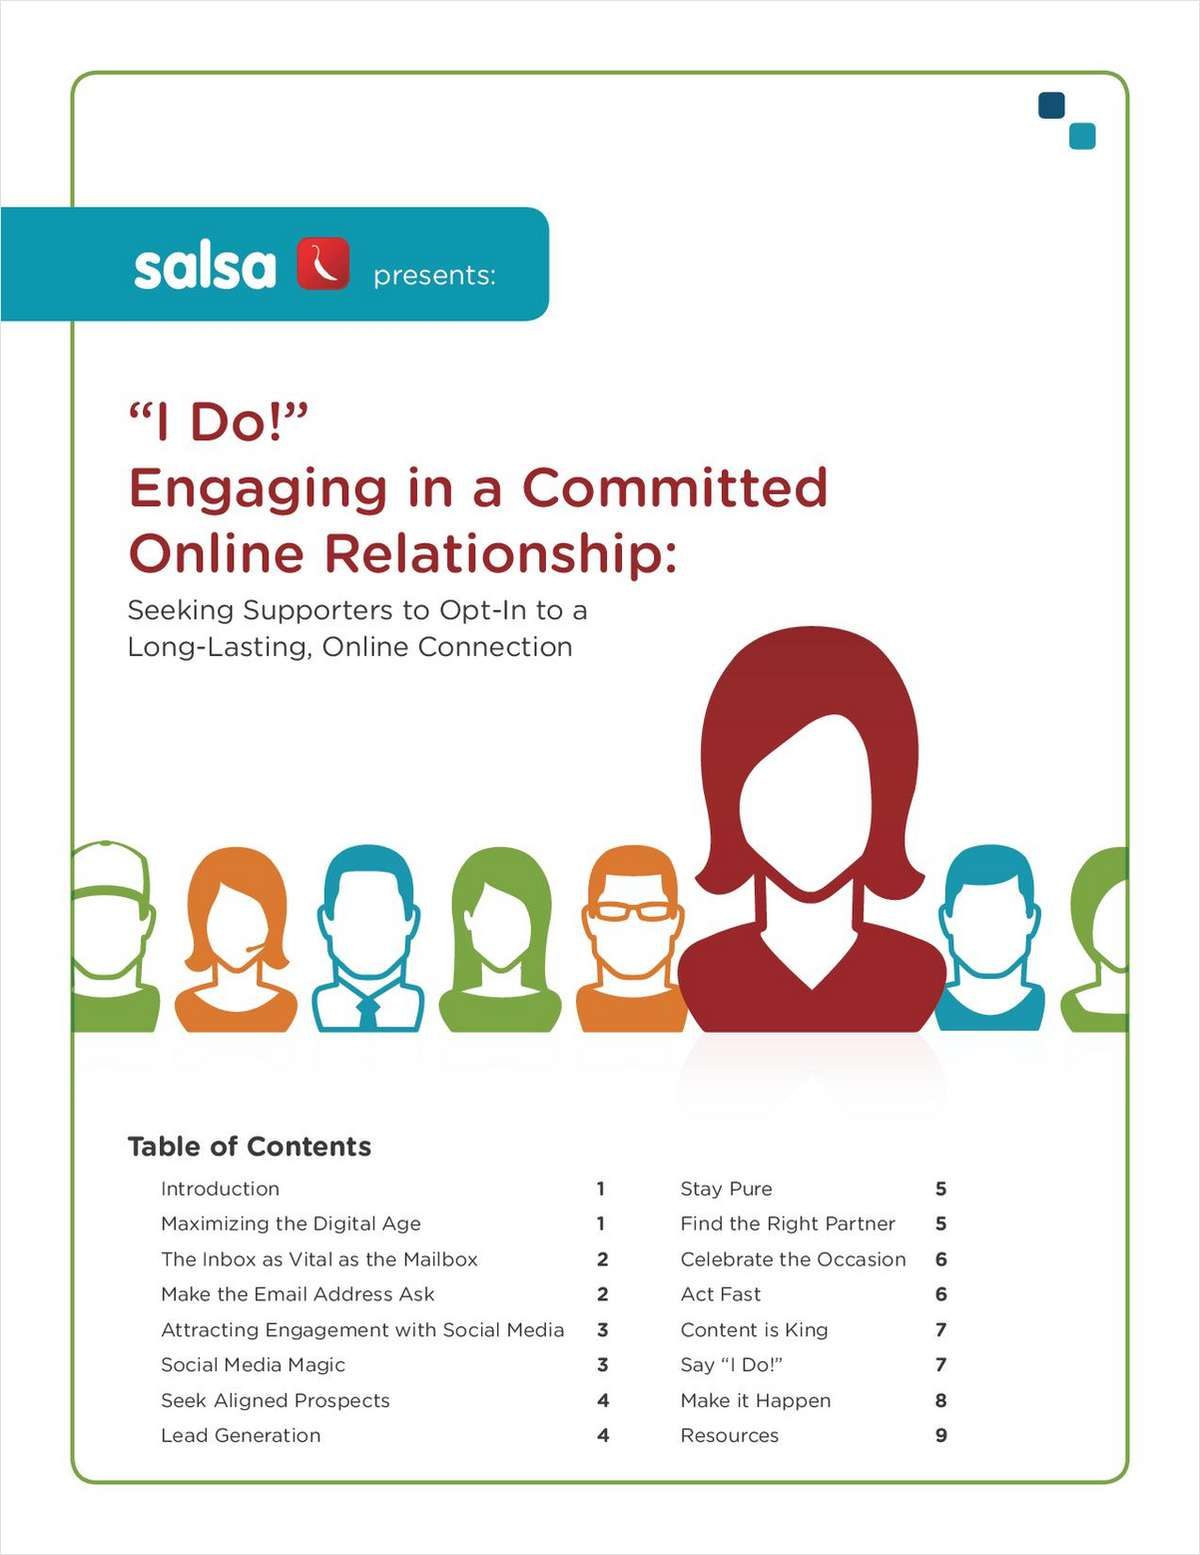 'I Do!' Engaging in a Committed Online Relationship: How to Grow Your Base of Support Online